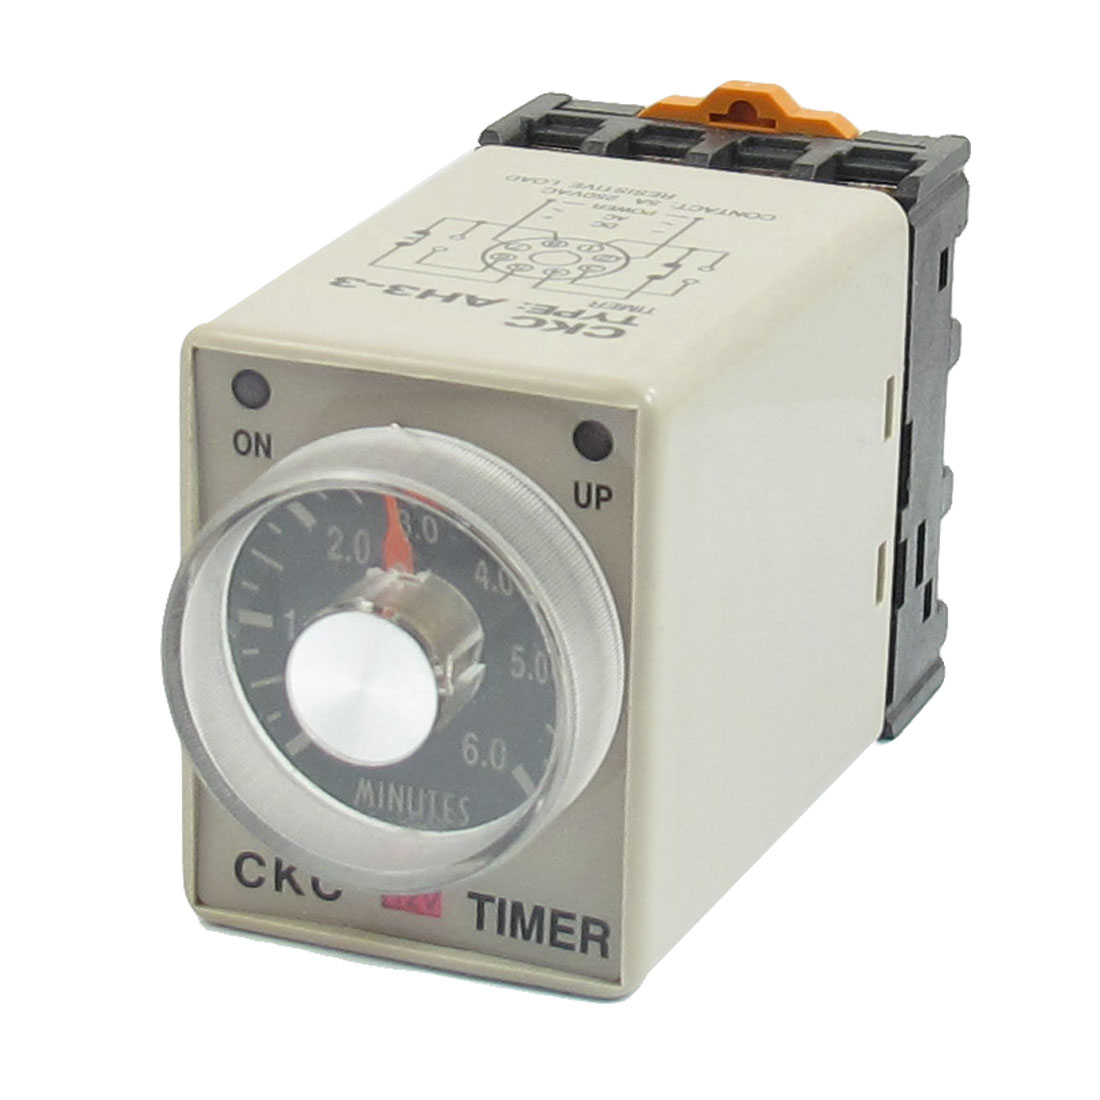 0-6 Minutes 8 Pin Plastic Housing Delay Timer Time Relay DC 12V AH3-3 w Base